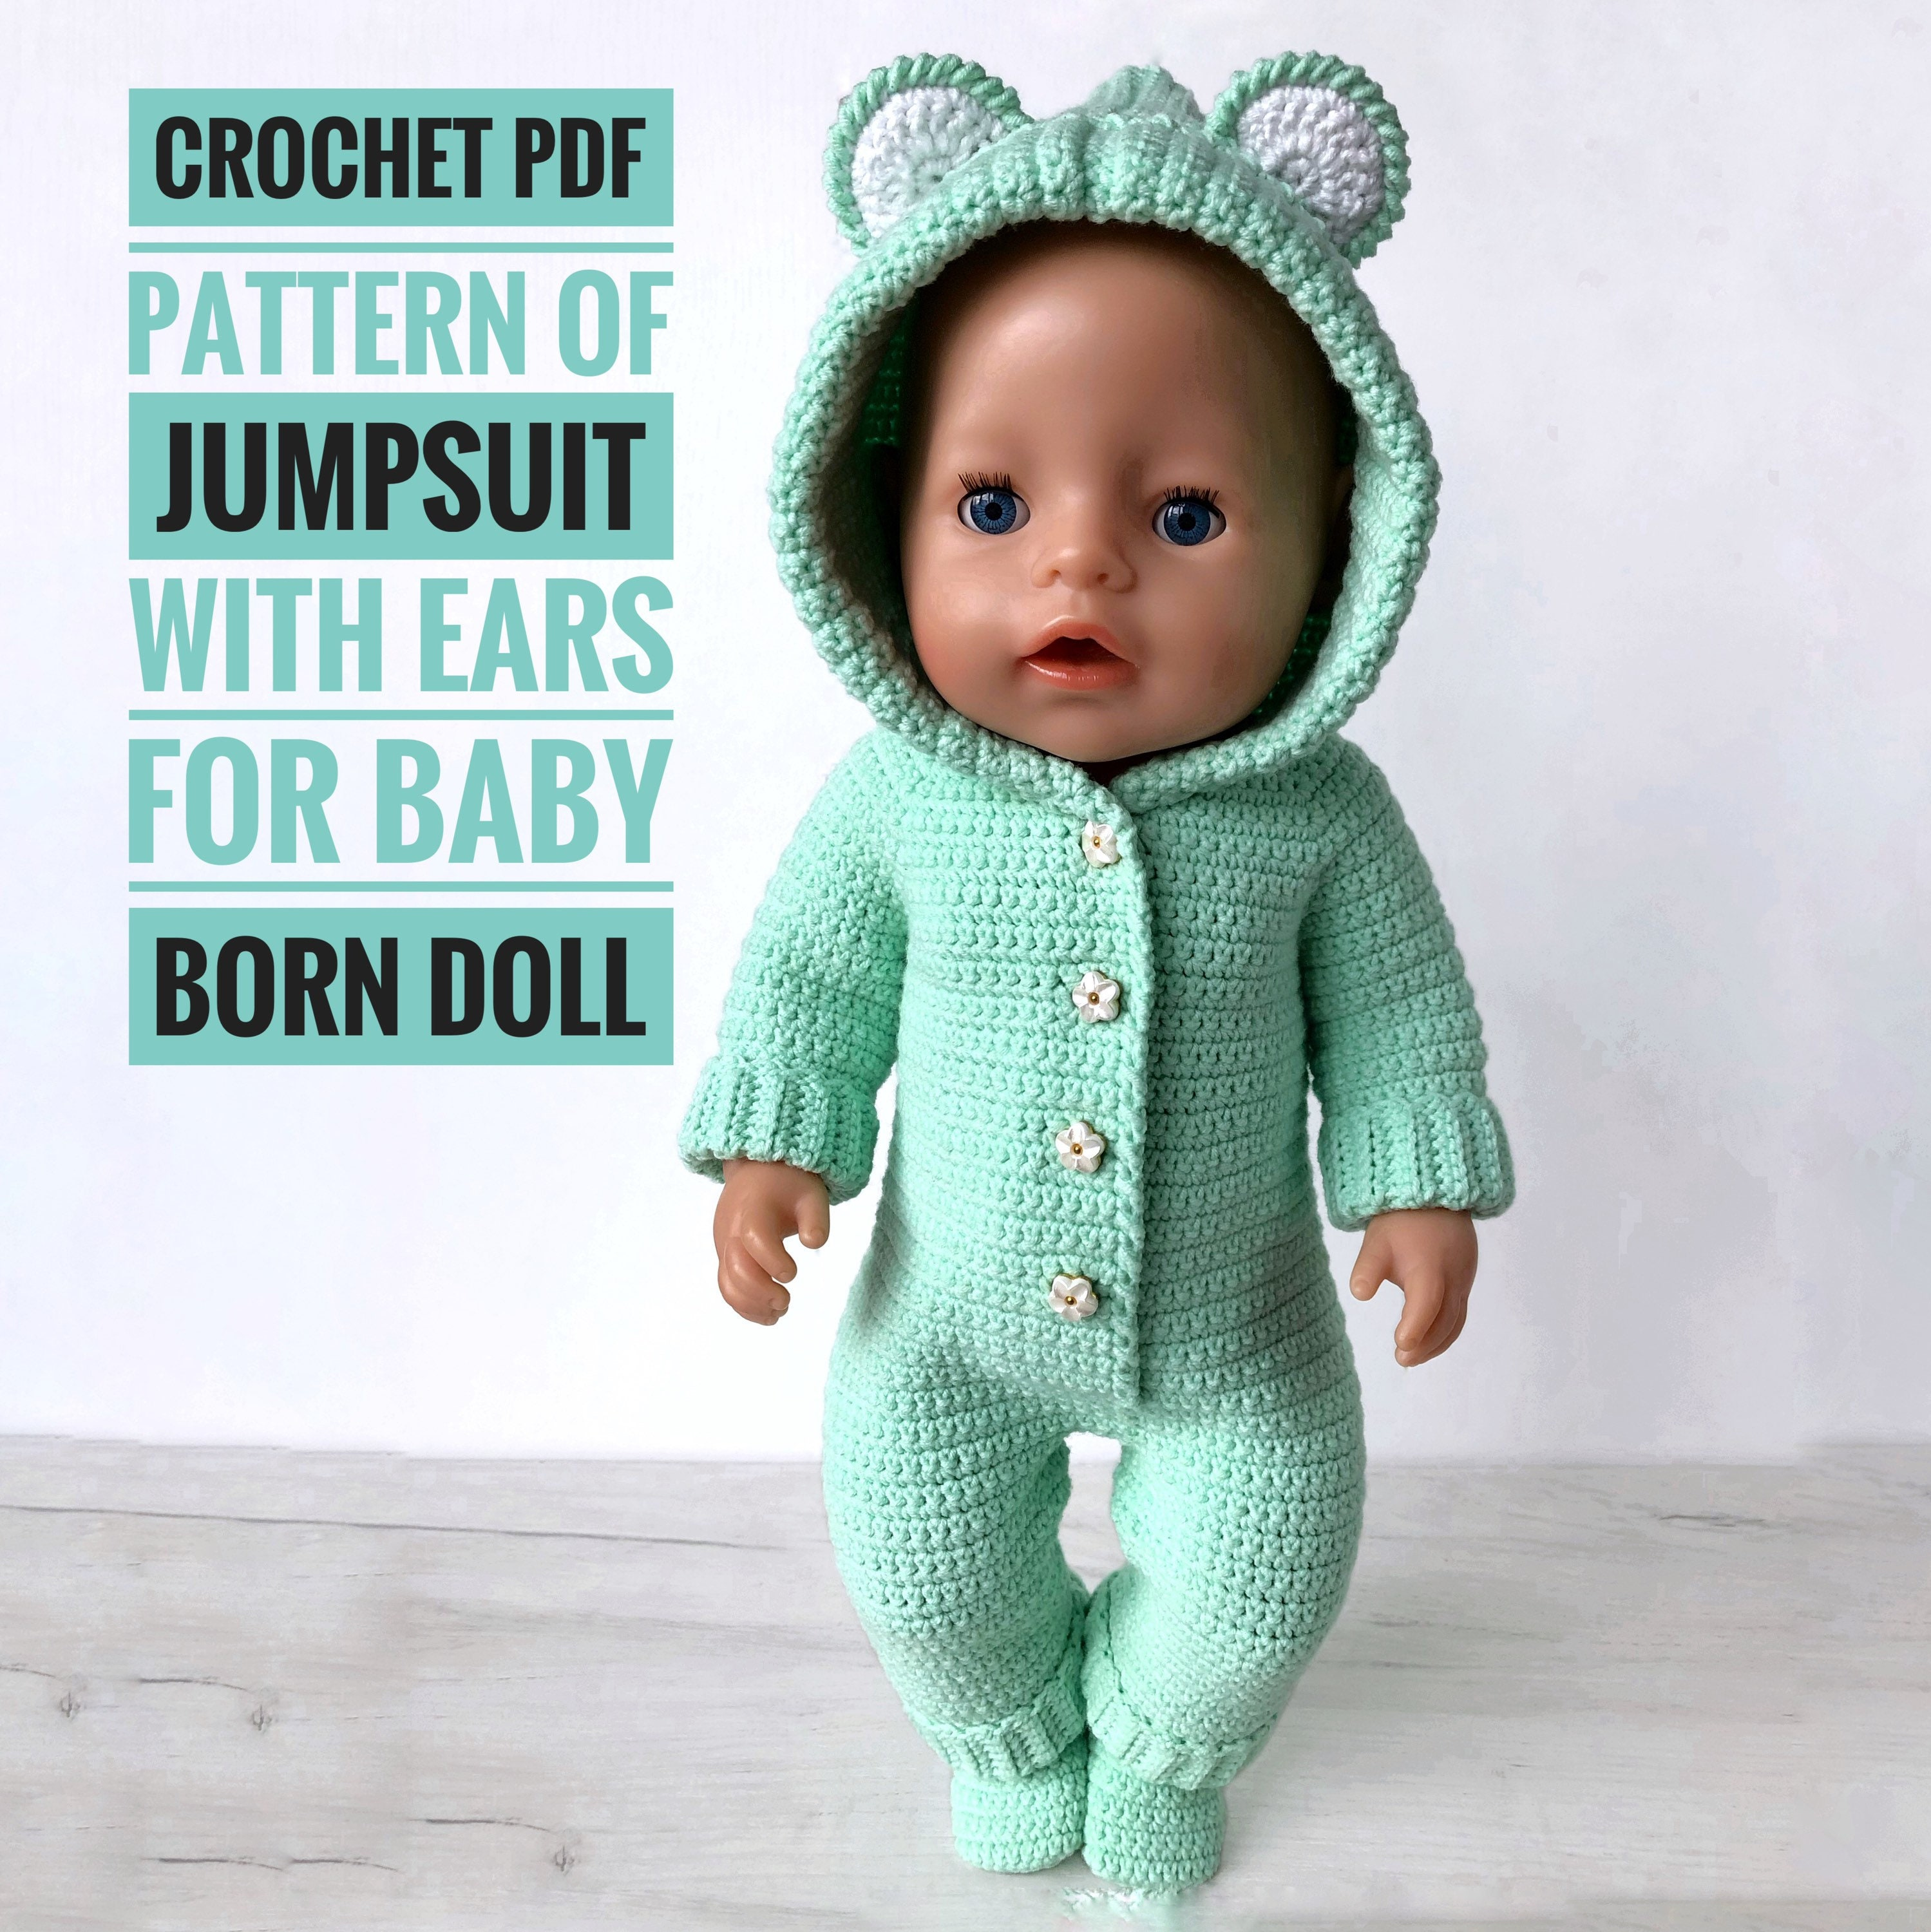 Crochet PDF Pattern of jumpsuit with ears for baby born doll (babyborn doll), baby born pattern